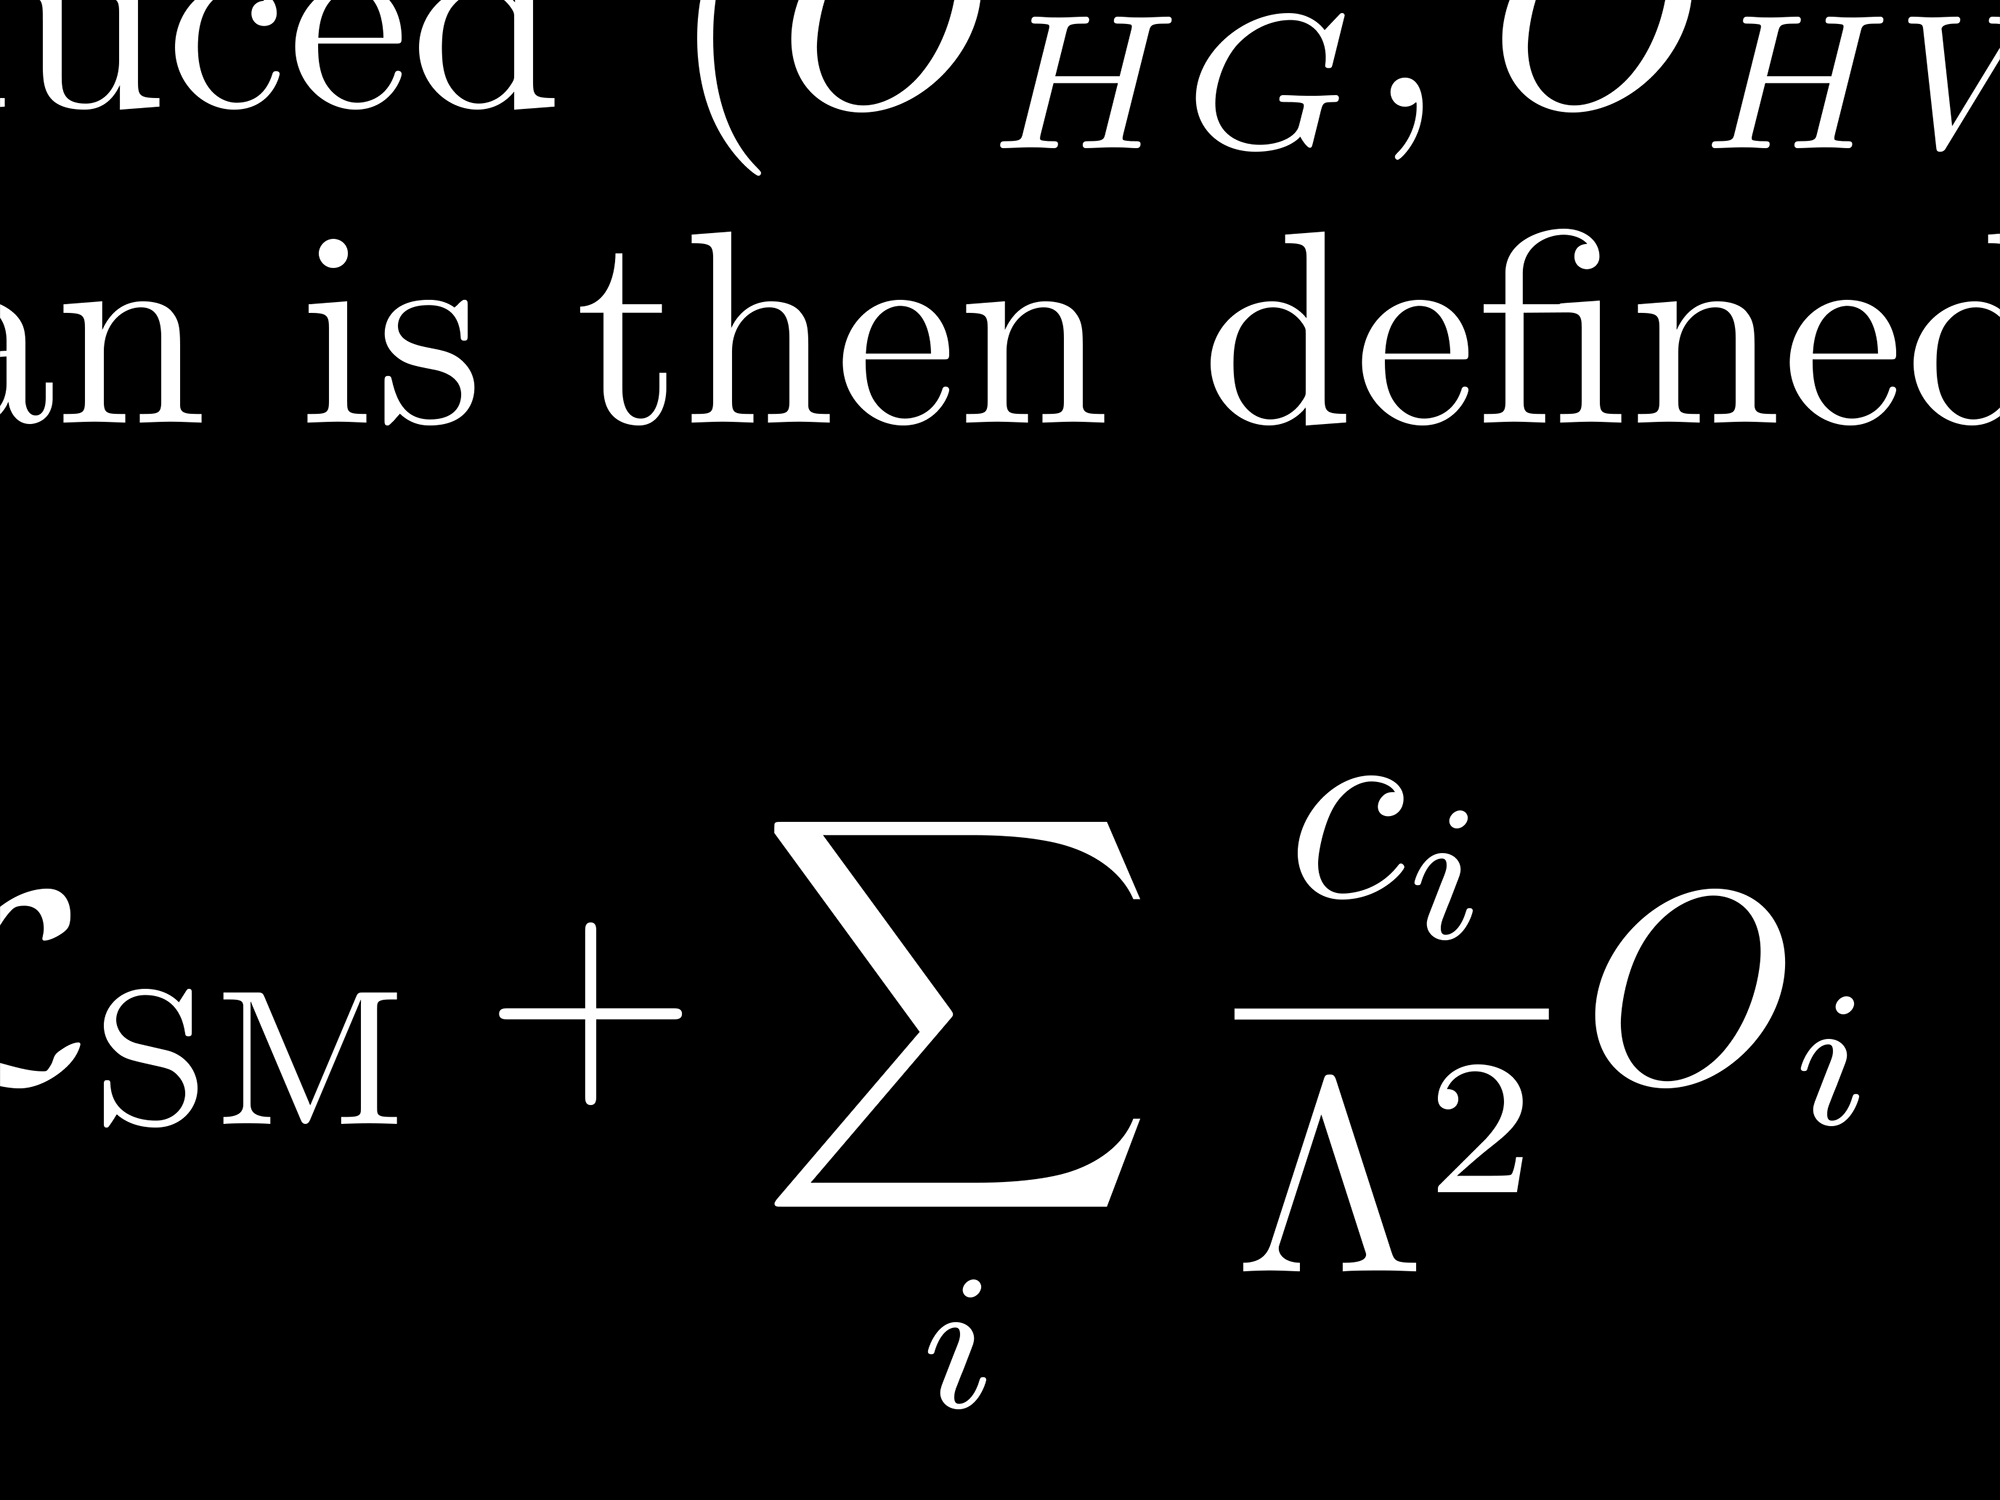 Angles_on_CP_violation_in_Higgs_boson_interactions__Copy_4-2